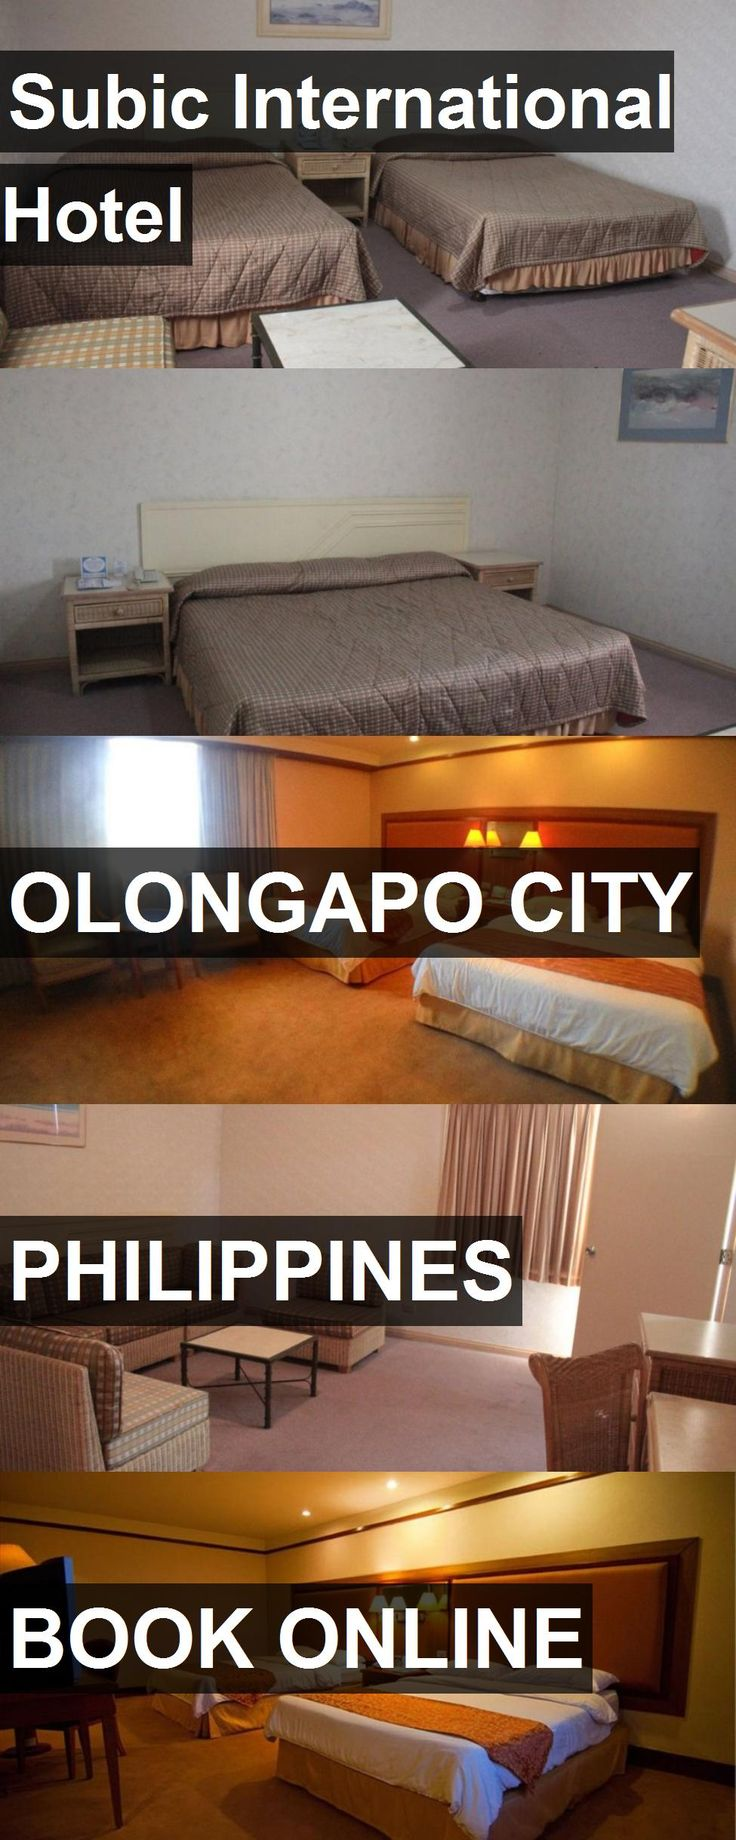 Hotel Subic International Hotel in Olongapo City, Philippines. For more information, photos, reviews and best prices please follow the link. #Philippines #OlongapoCity #hotel #travel #vacation